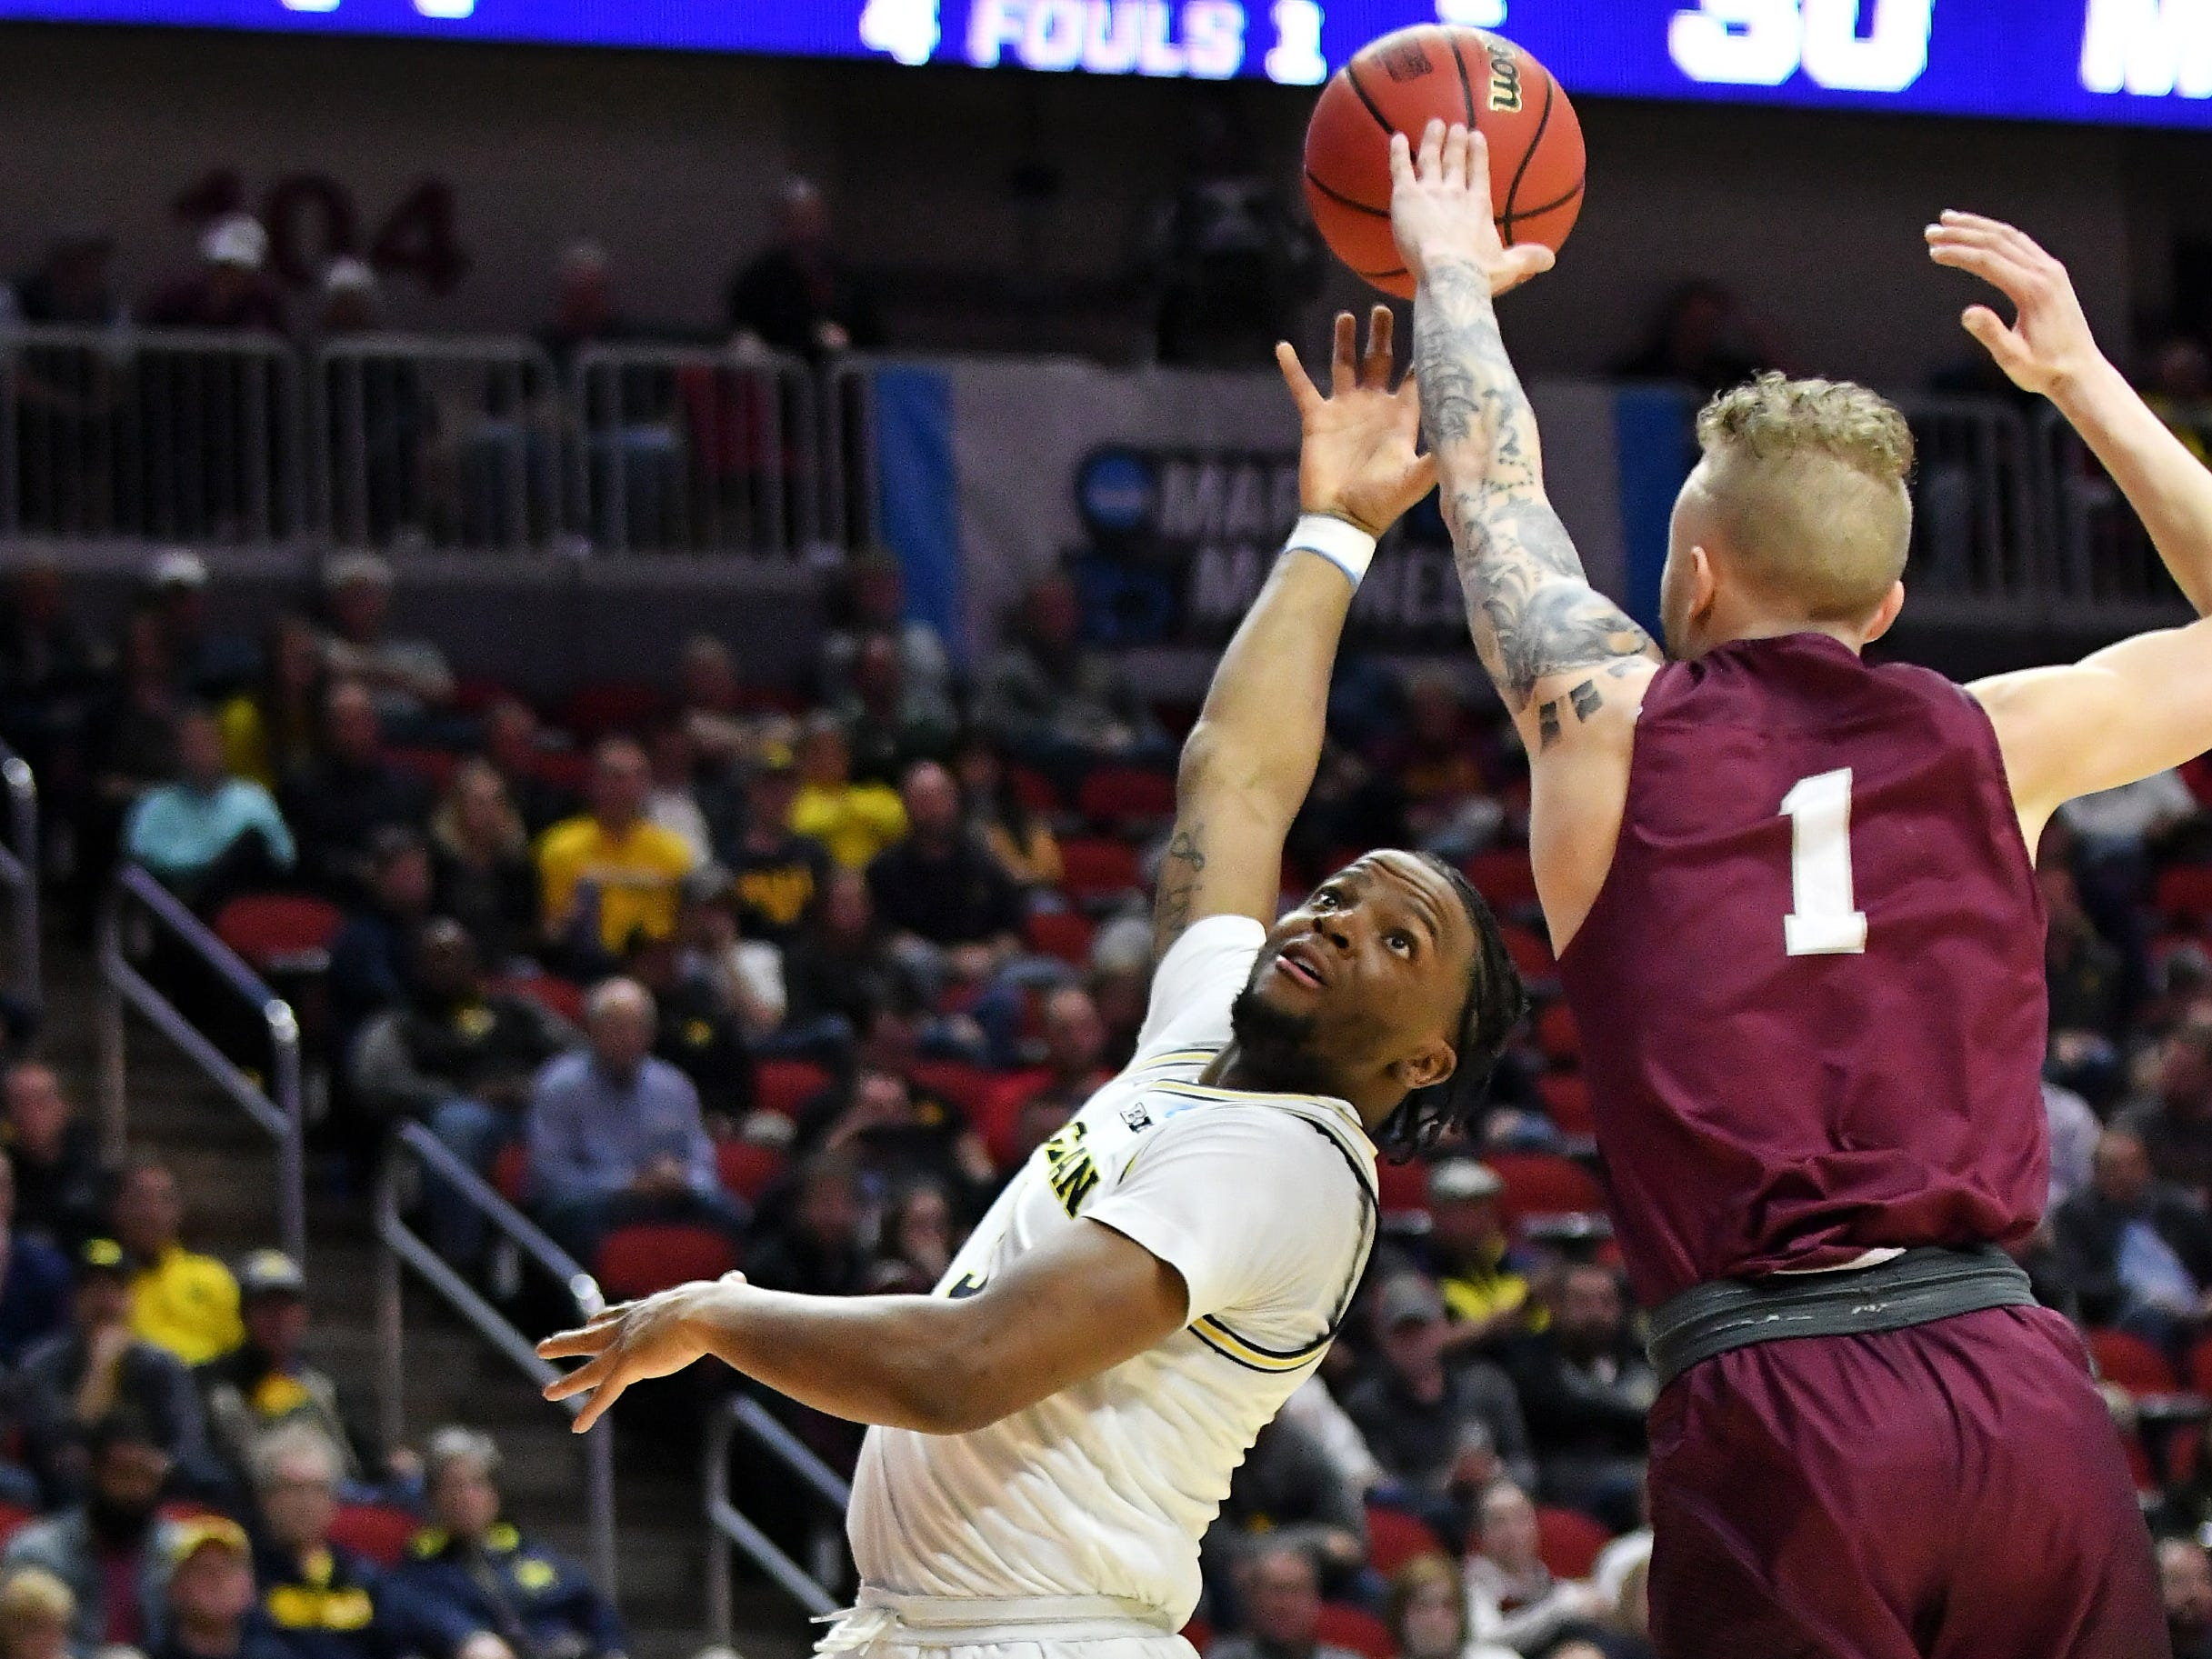 Montana guard Timmy Falls (1) defends a shot by Michigan guard Zavier Simpson (3) in the second half.